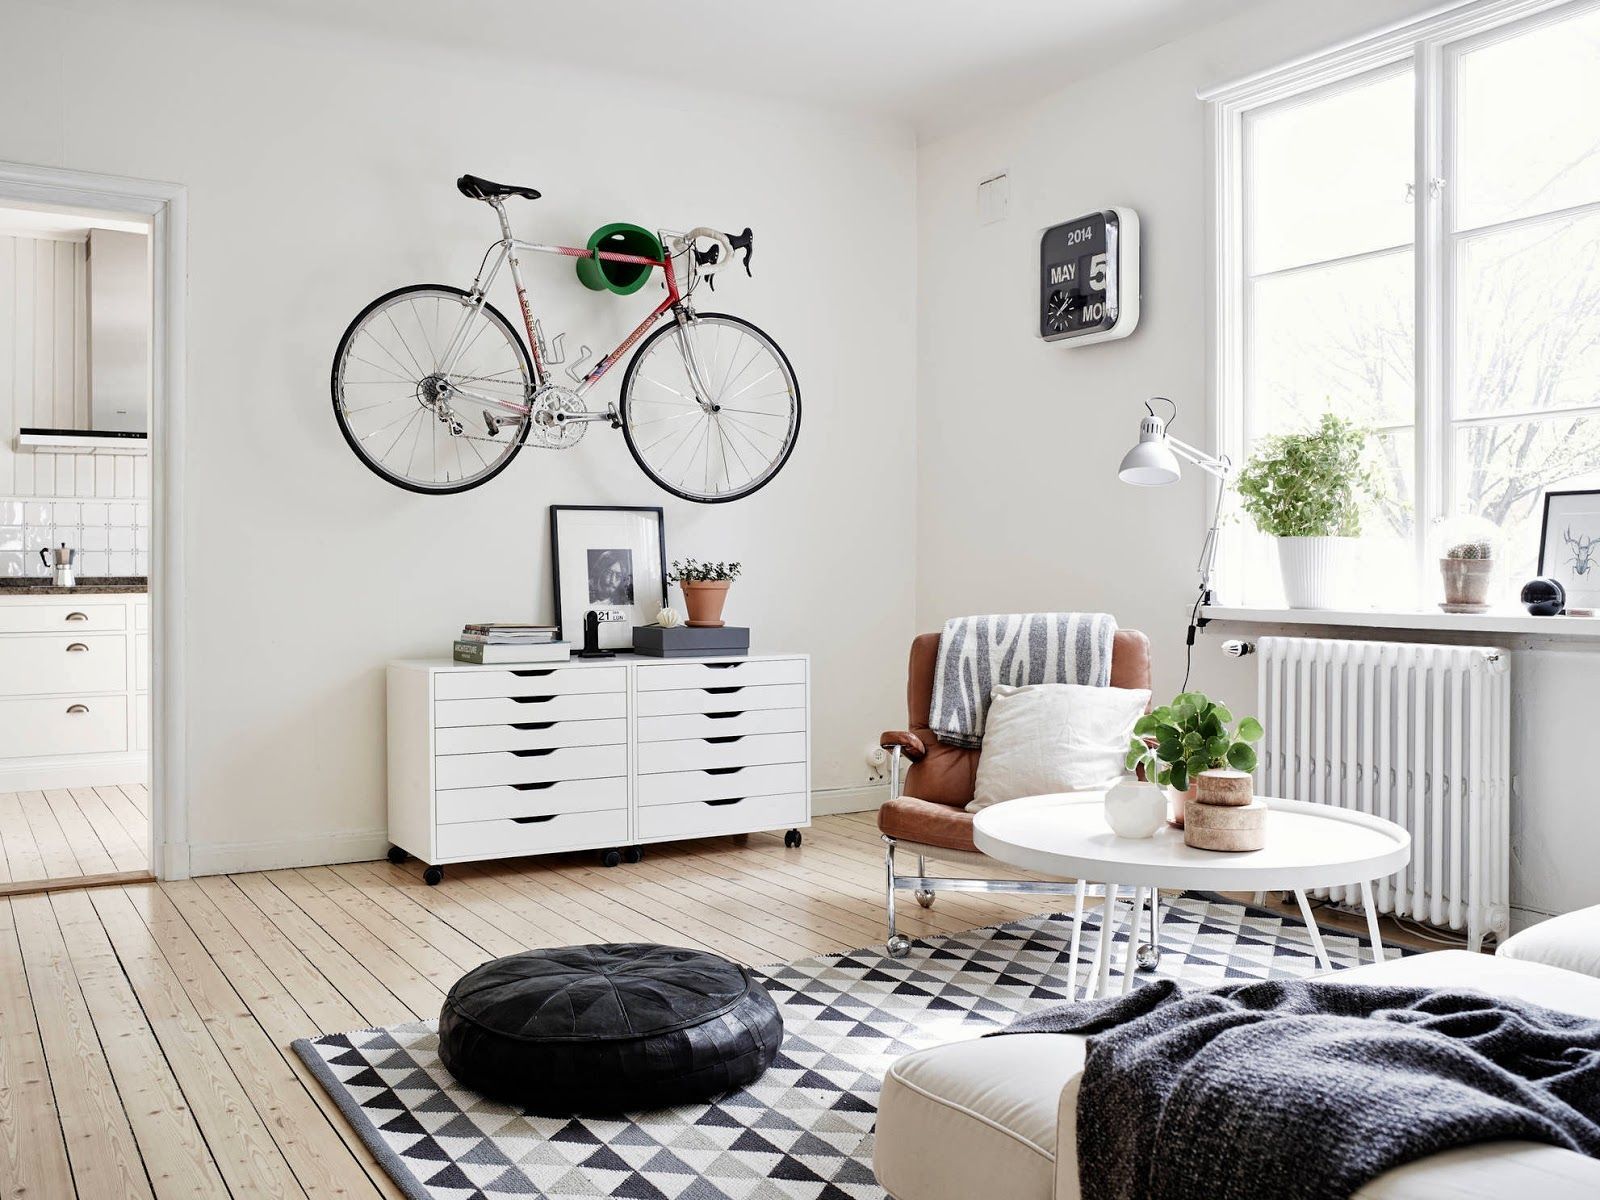 A Very Cool Swedish Space (With A Bike)